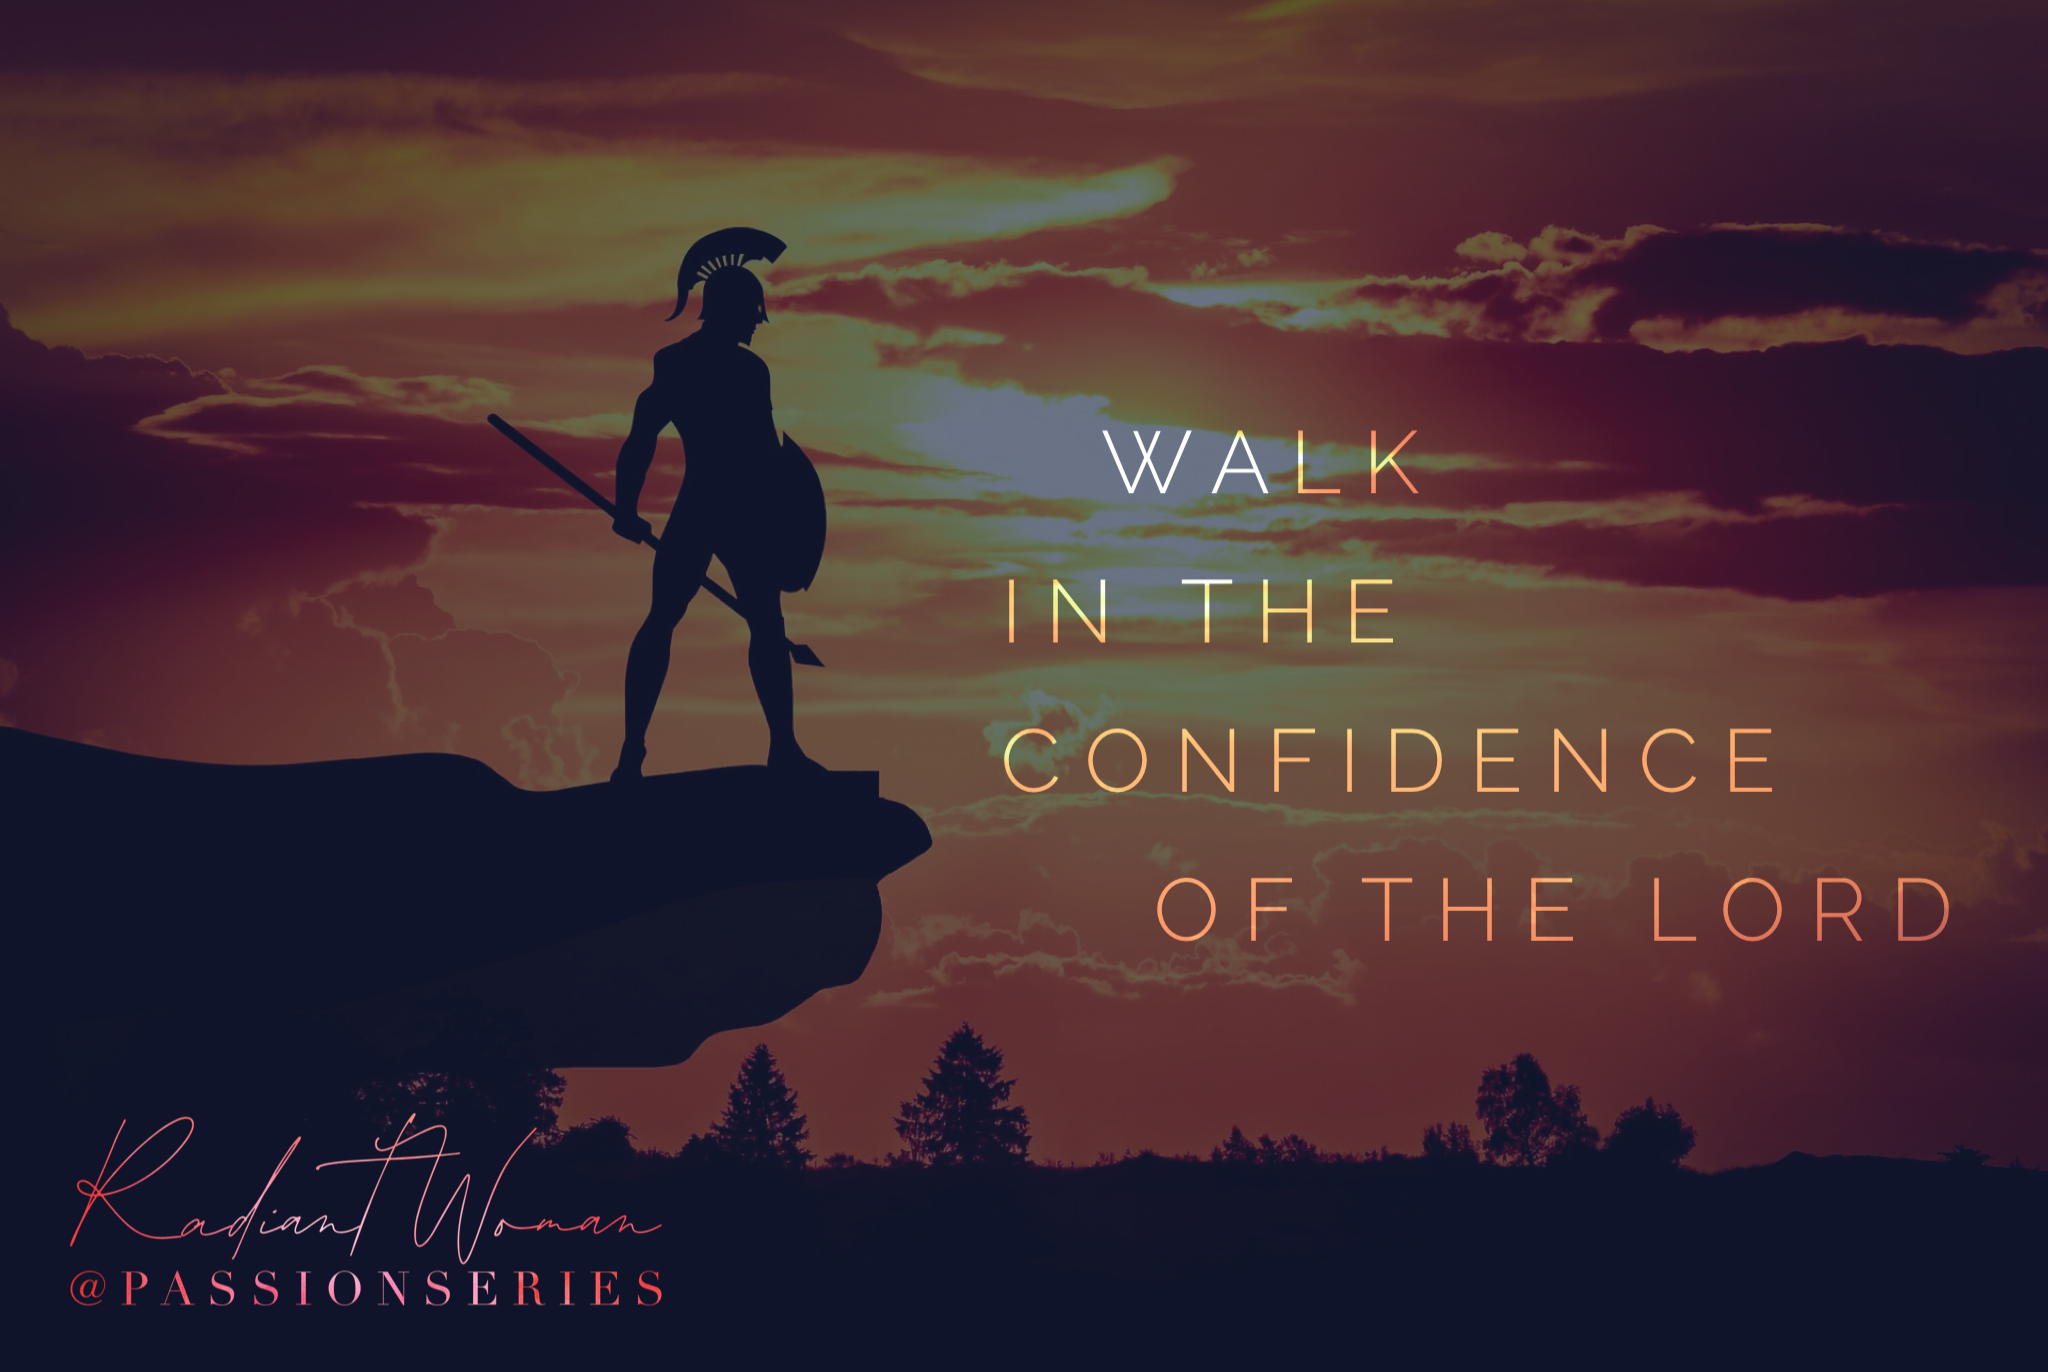 Walk in the Confidence of the Lord